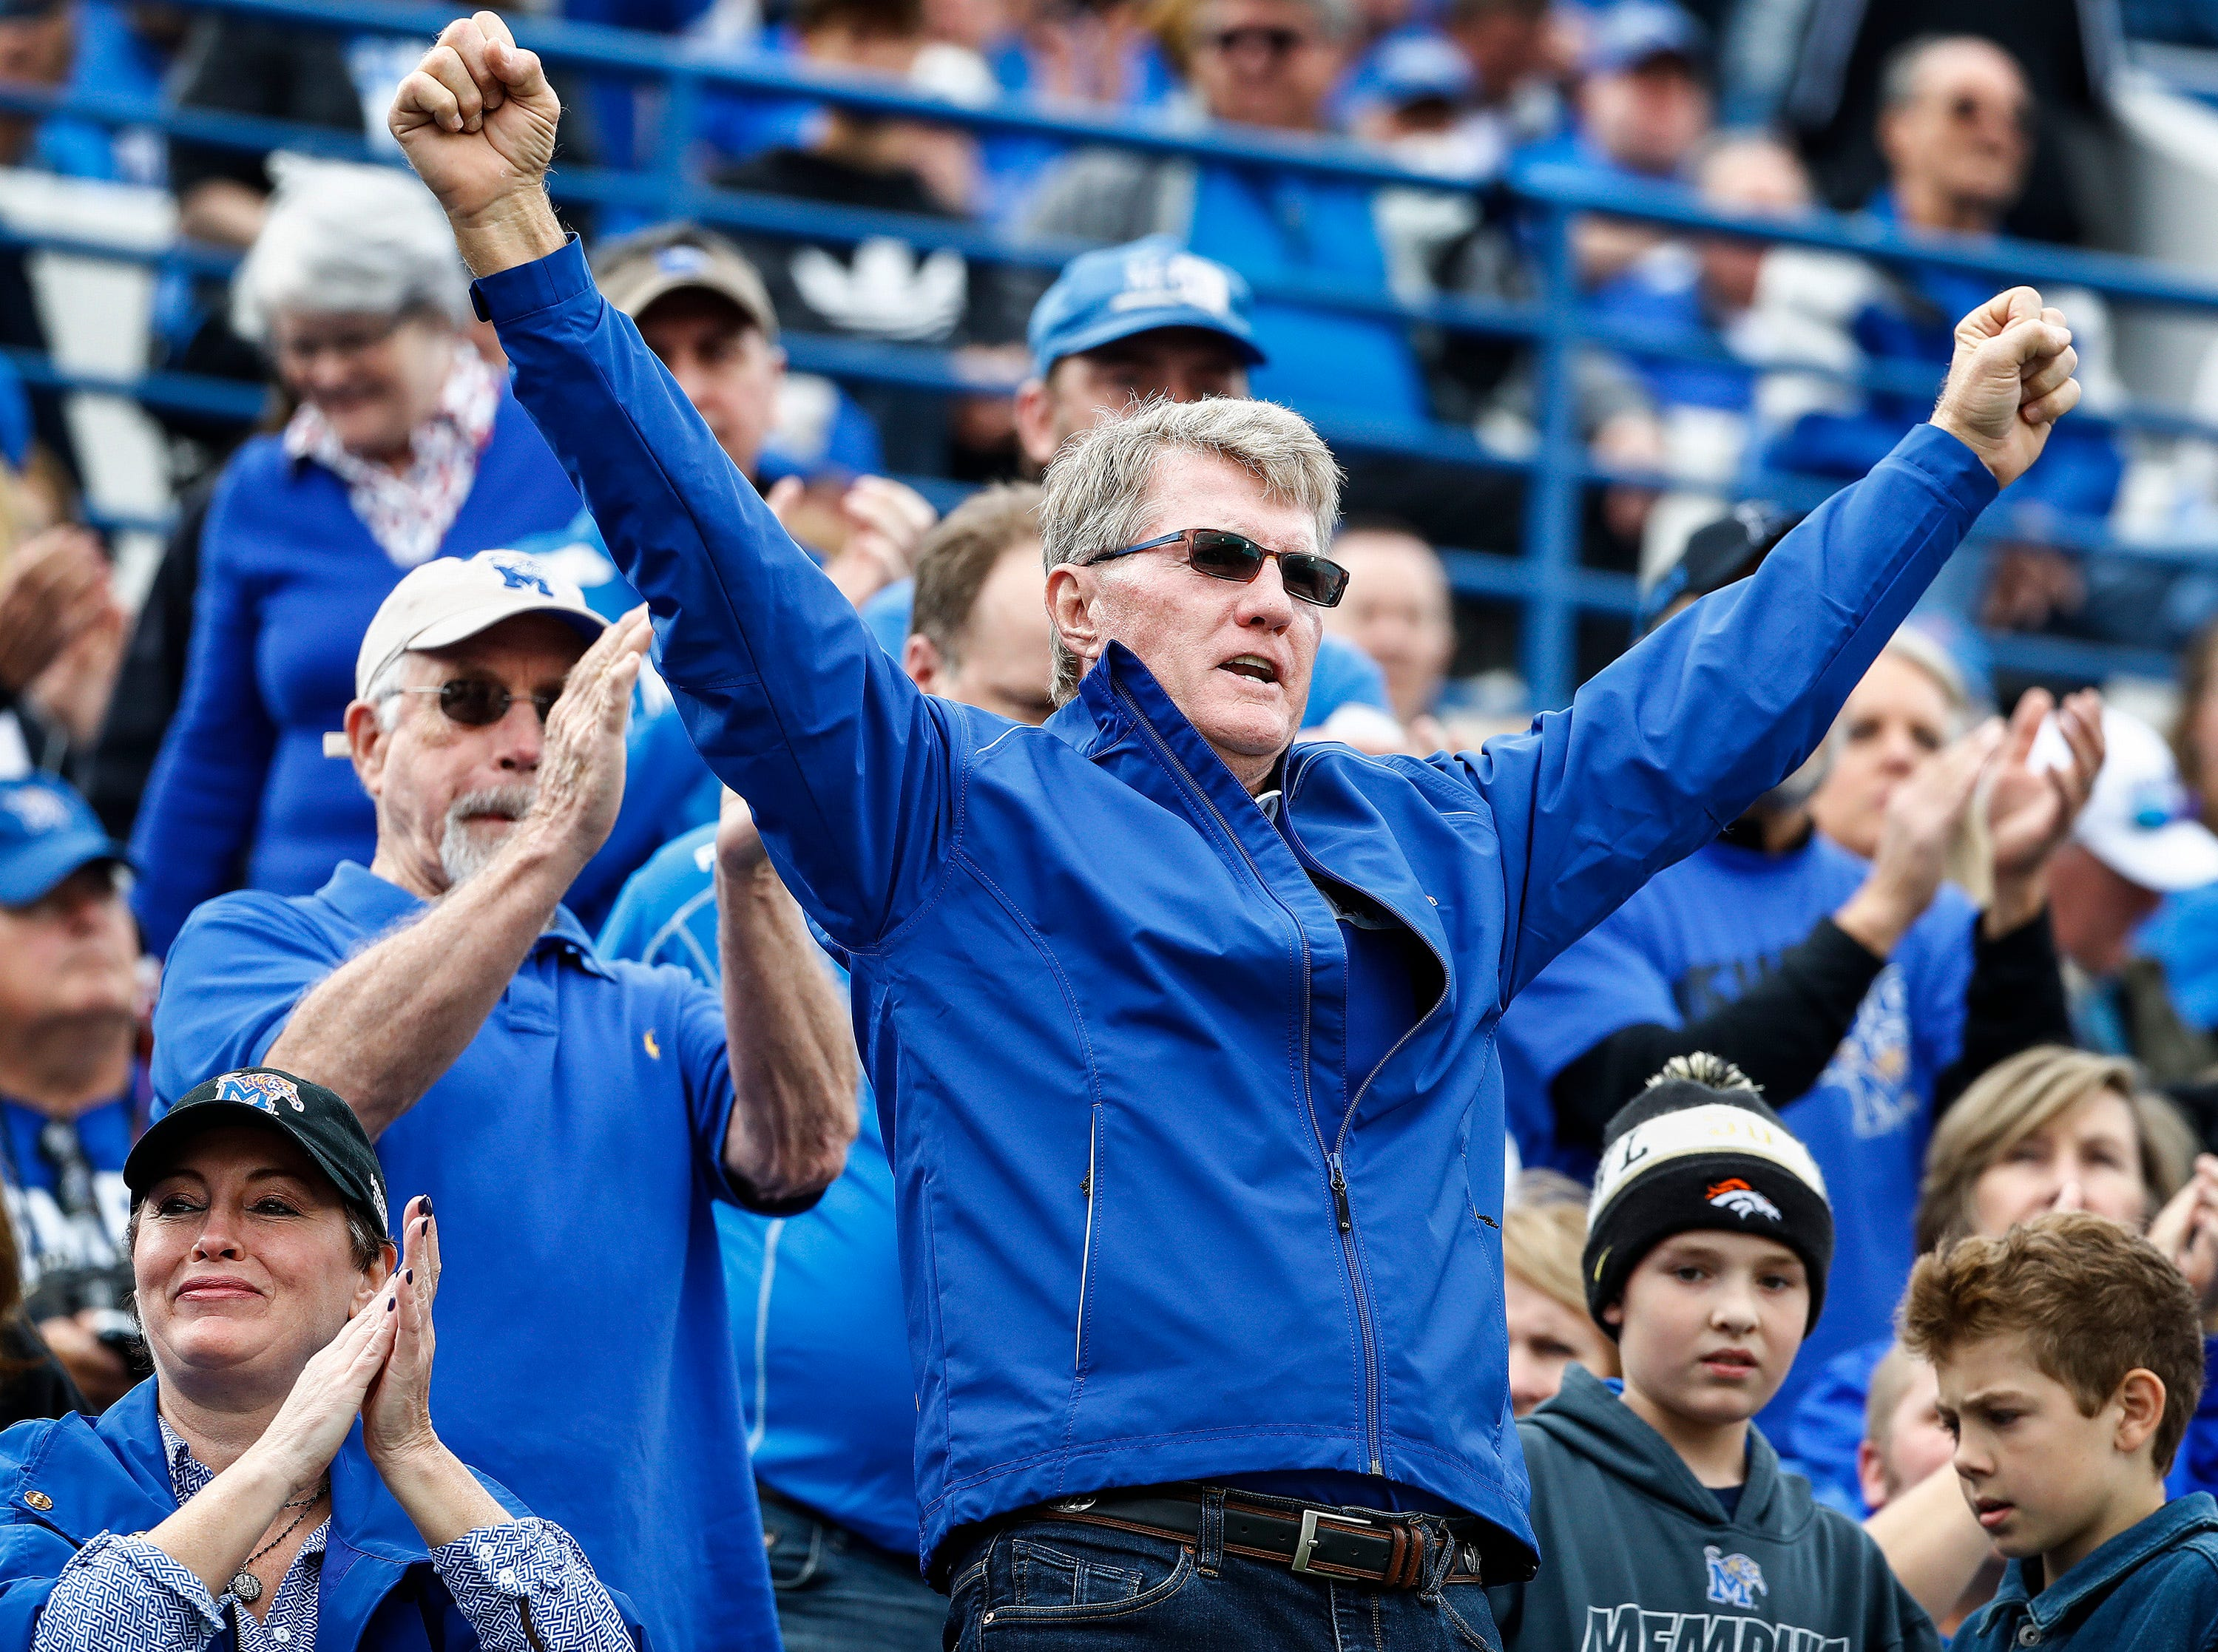 Memphis fans celebrate during action against Central Florida in Memphis, Tenn., Saturday, October 13, 2018.